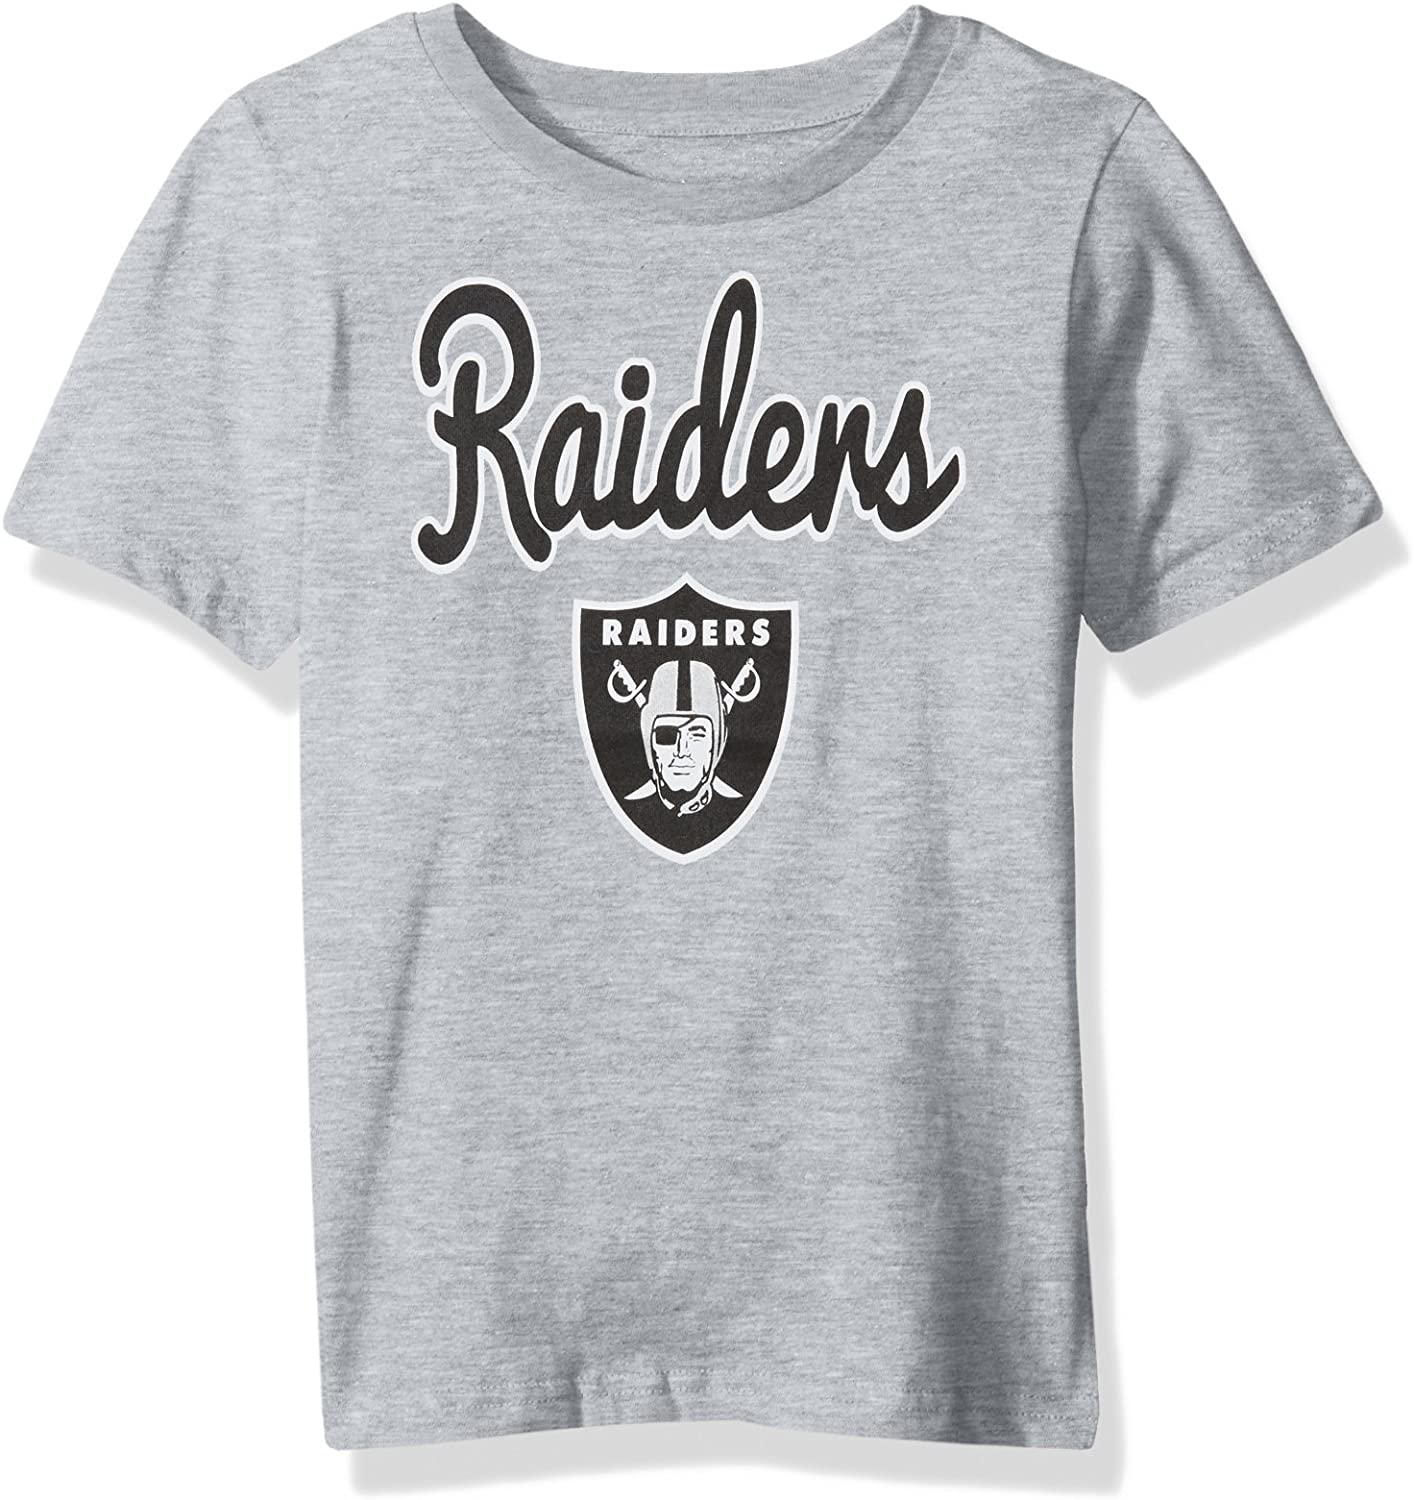 Outerstuff NFL Boys NFL Kids /& Youth Gridiron Hero Short Sleeve Tee